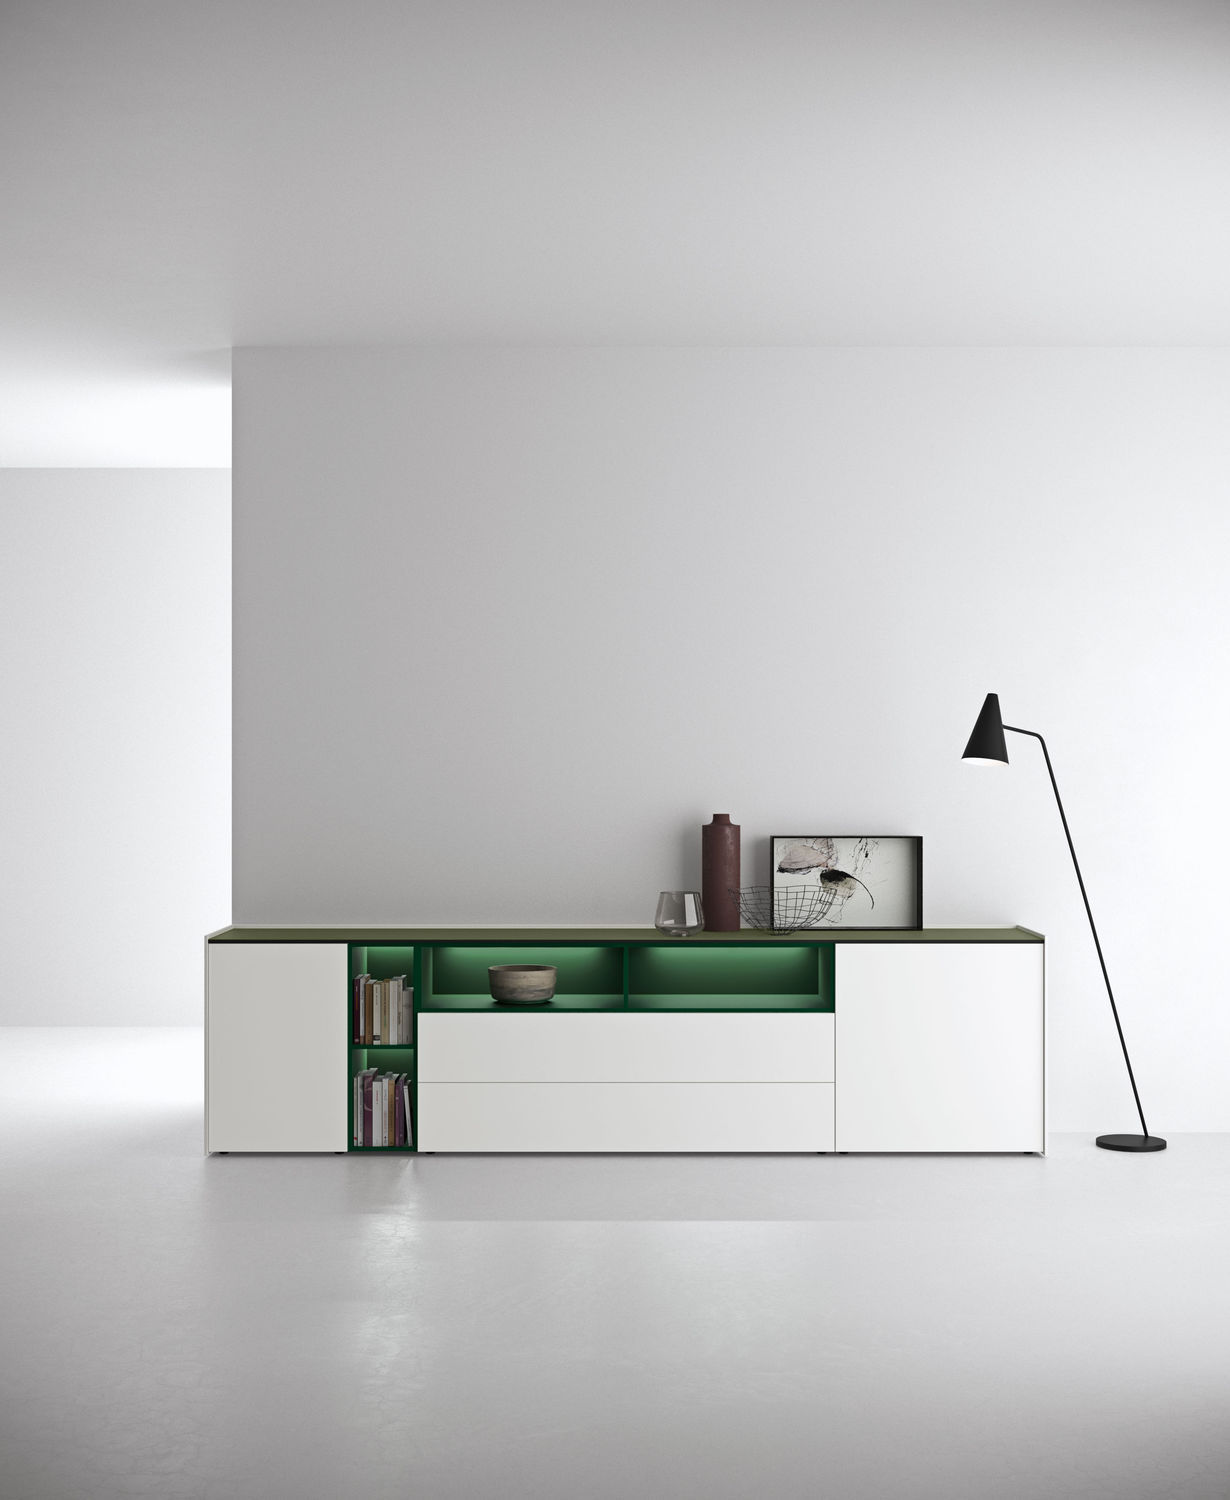 Modernes Sideboard Lackiertes Holz Mit Regal Weiss